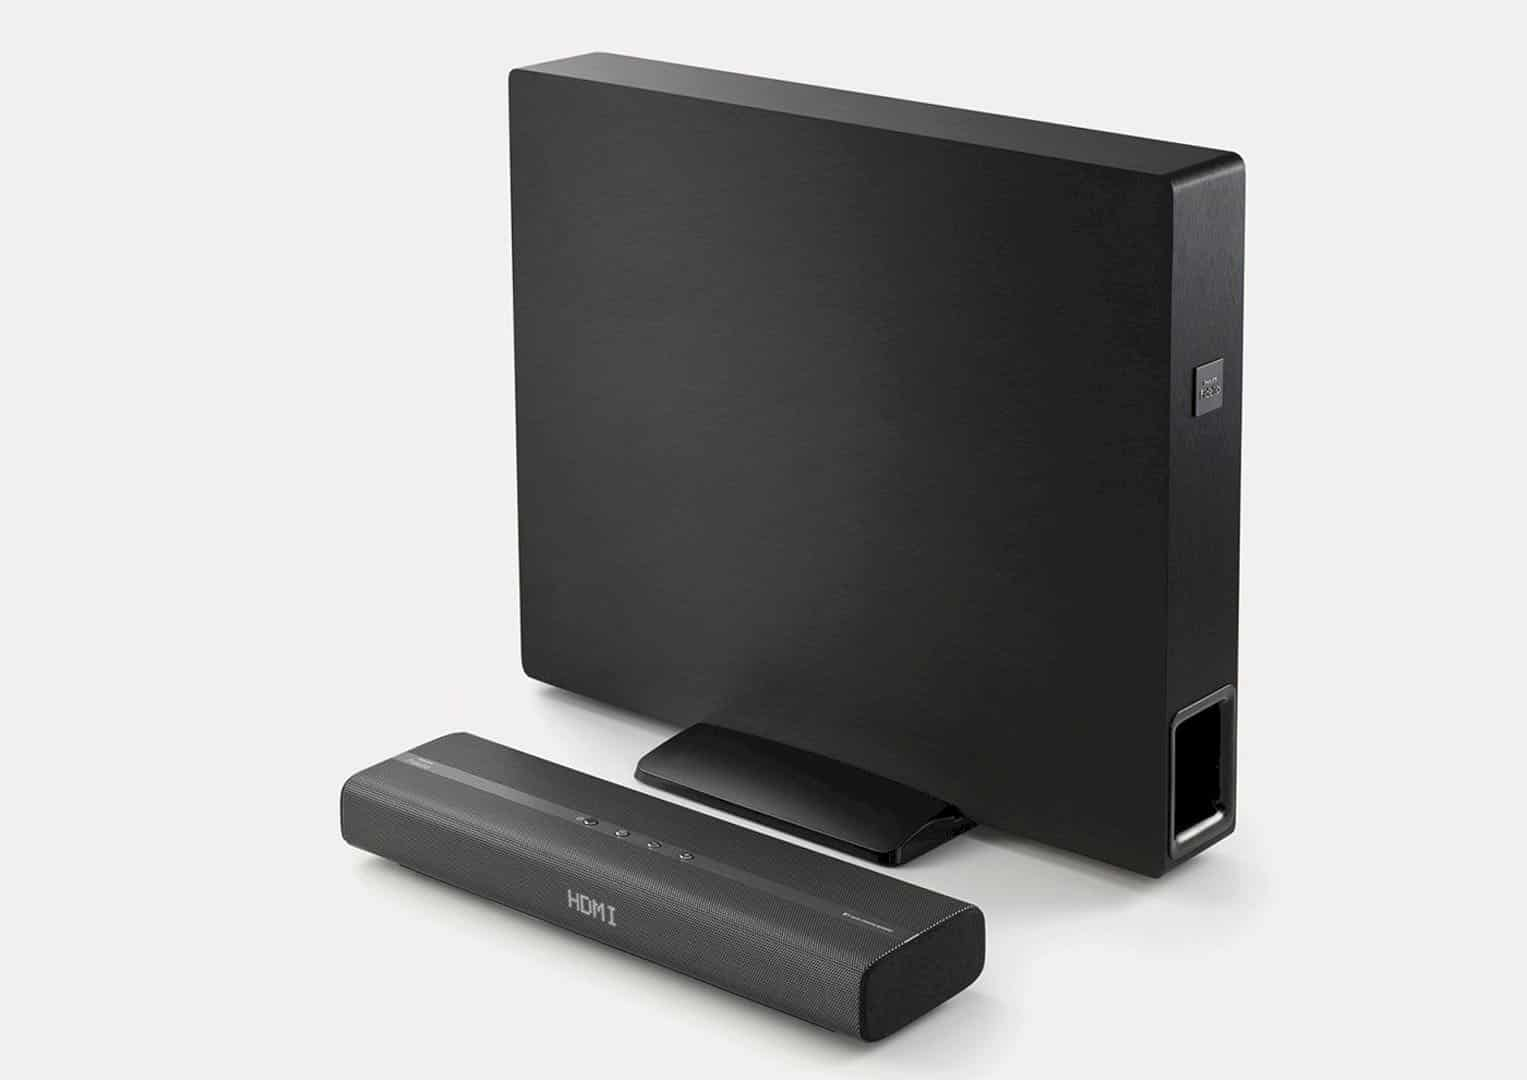 The Philips Fidelio Soundbar 6